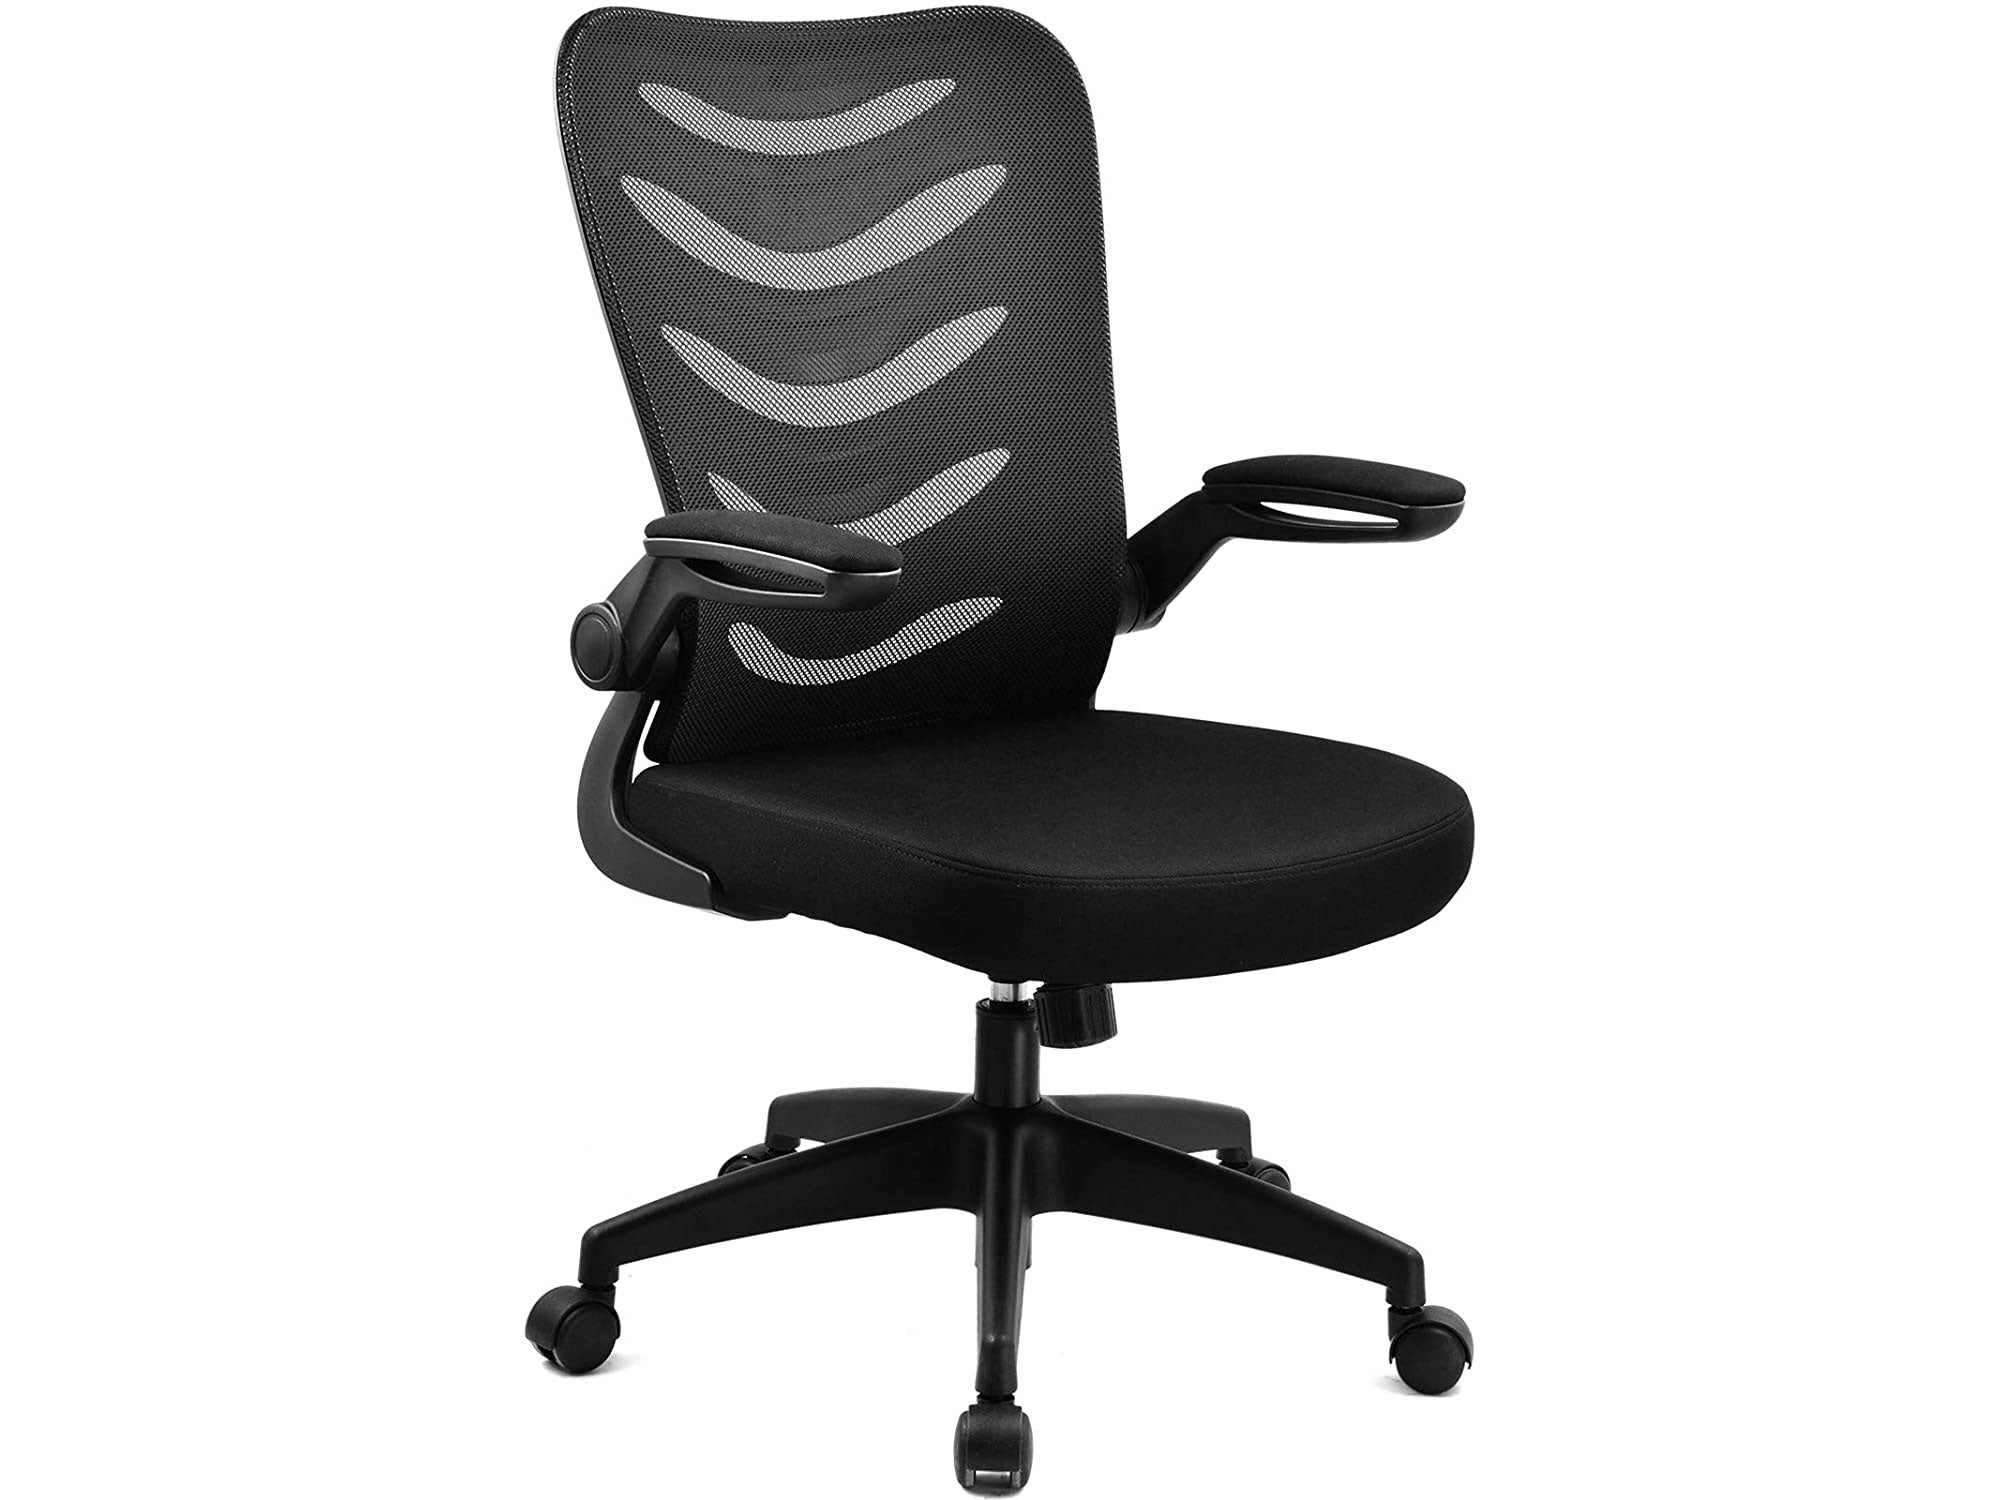 COMHOMA Office Desk Chair with Armrest Office Computer Chairs